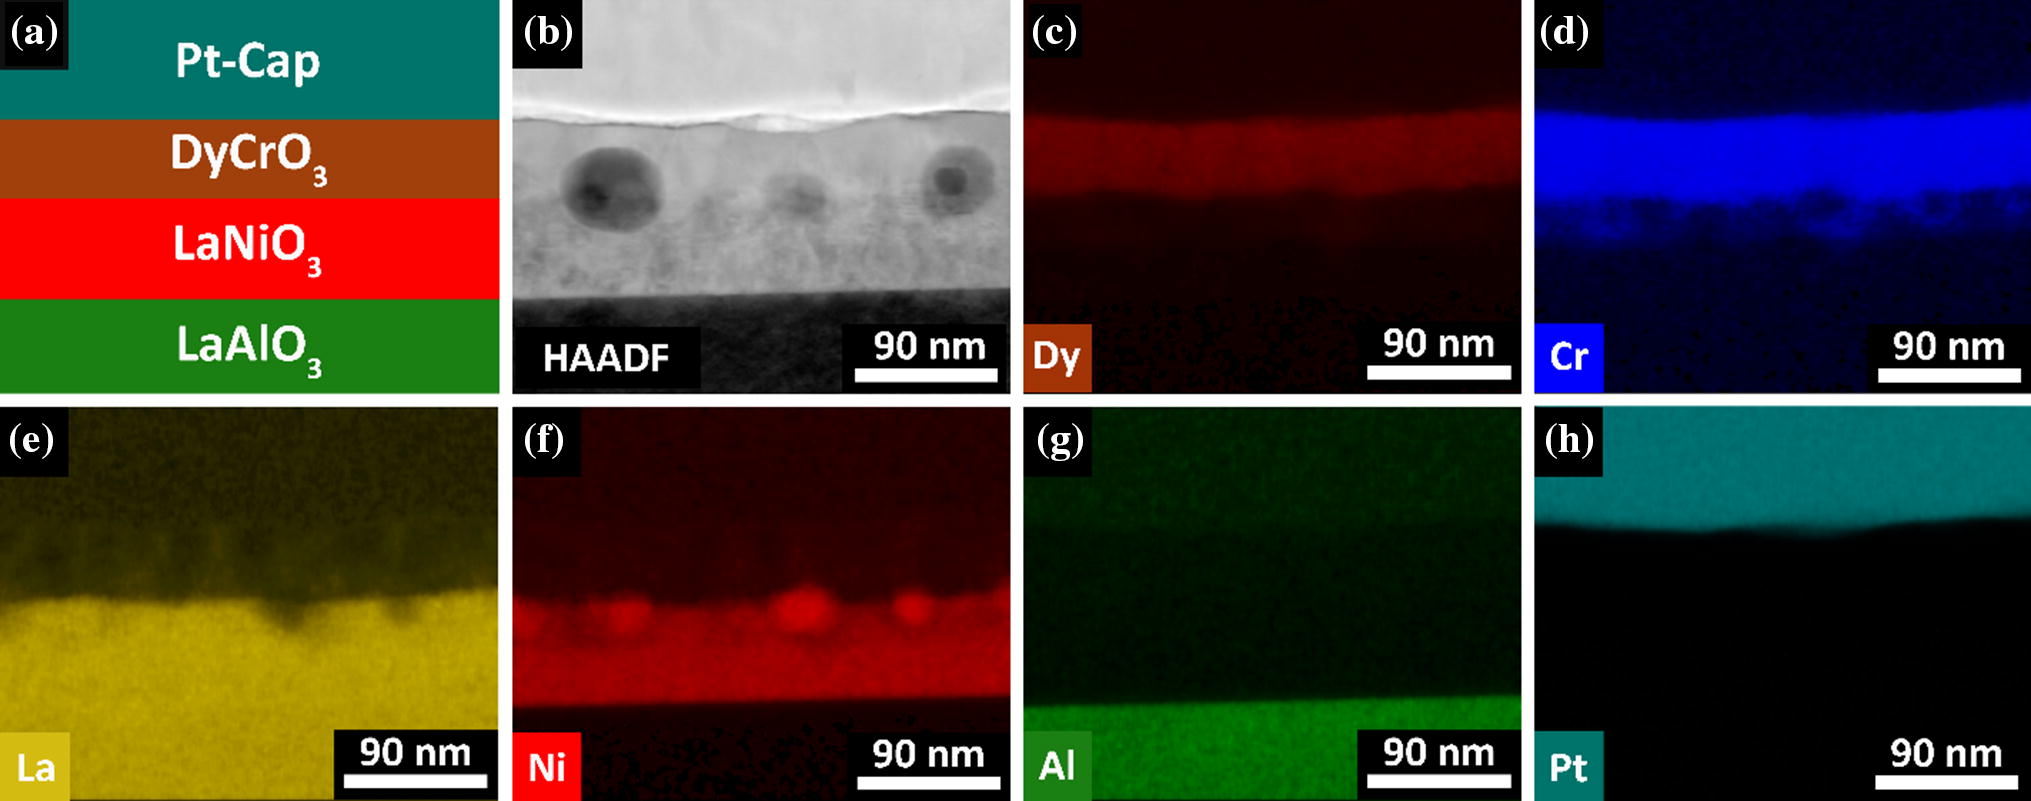 Magnetic and tunable dielectric properties of DyCrO3 thin